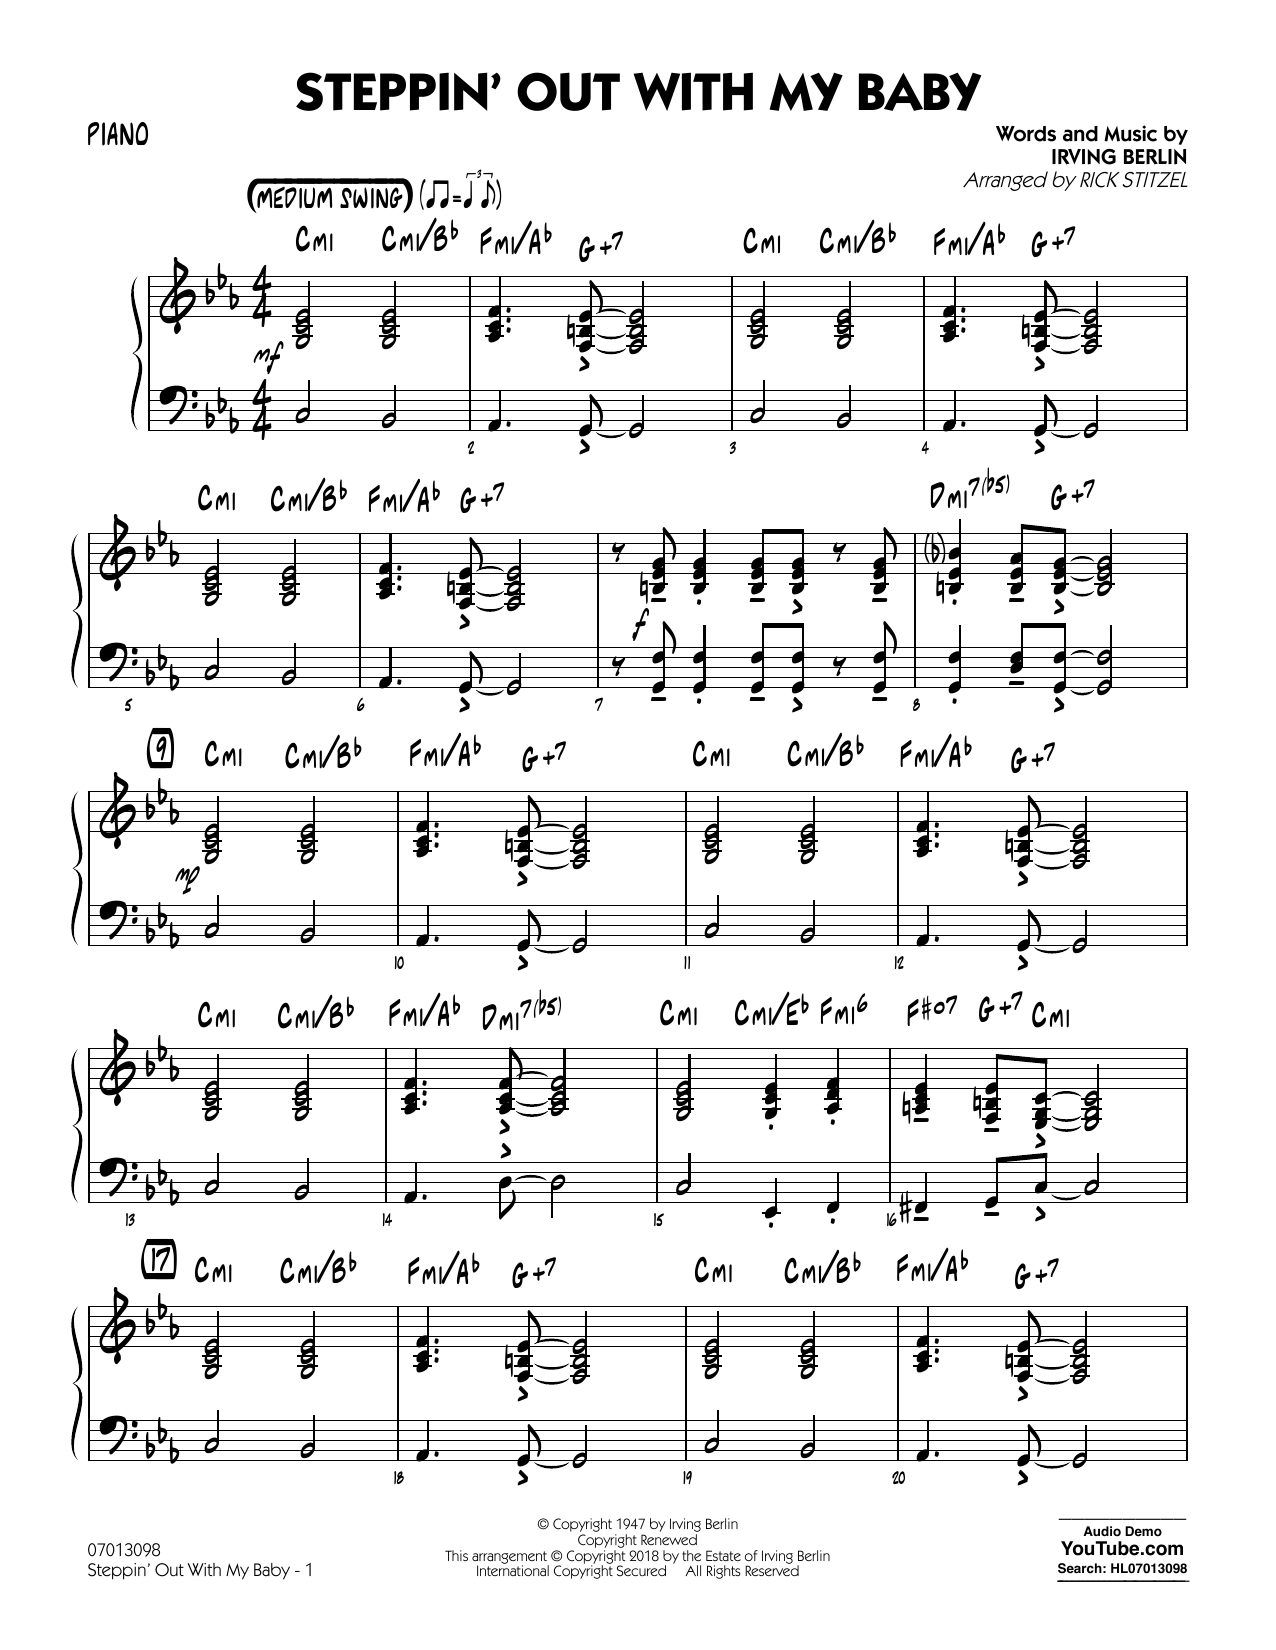 Rick Stitzel Steppin' Out with My Baby - Piano sheet music notes and chords. Download Printable PDF.